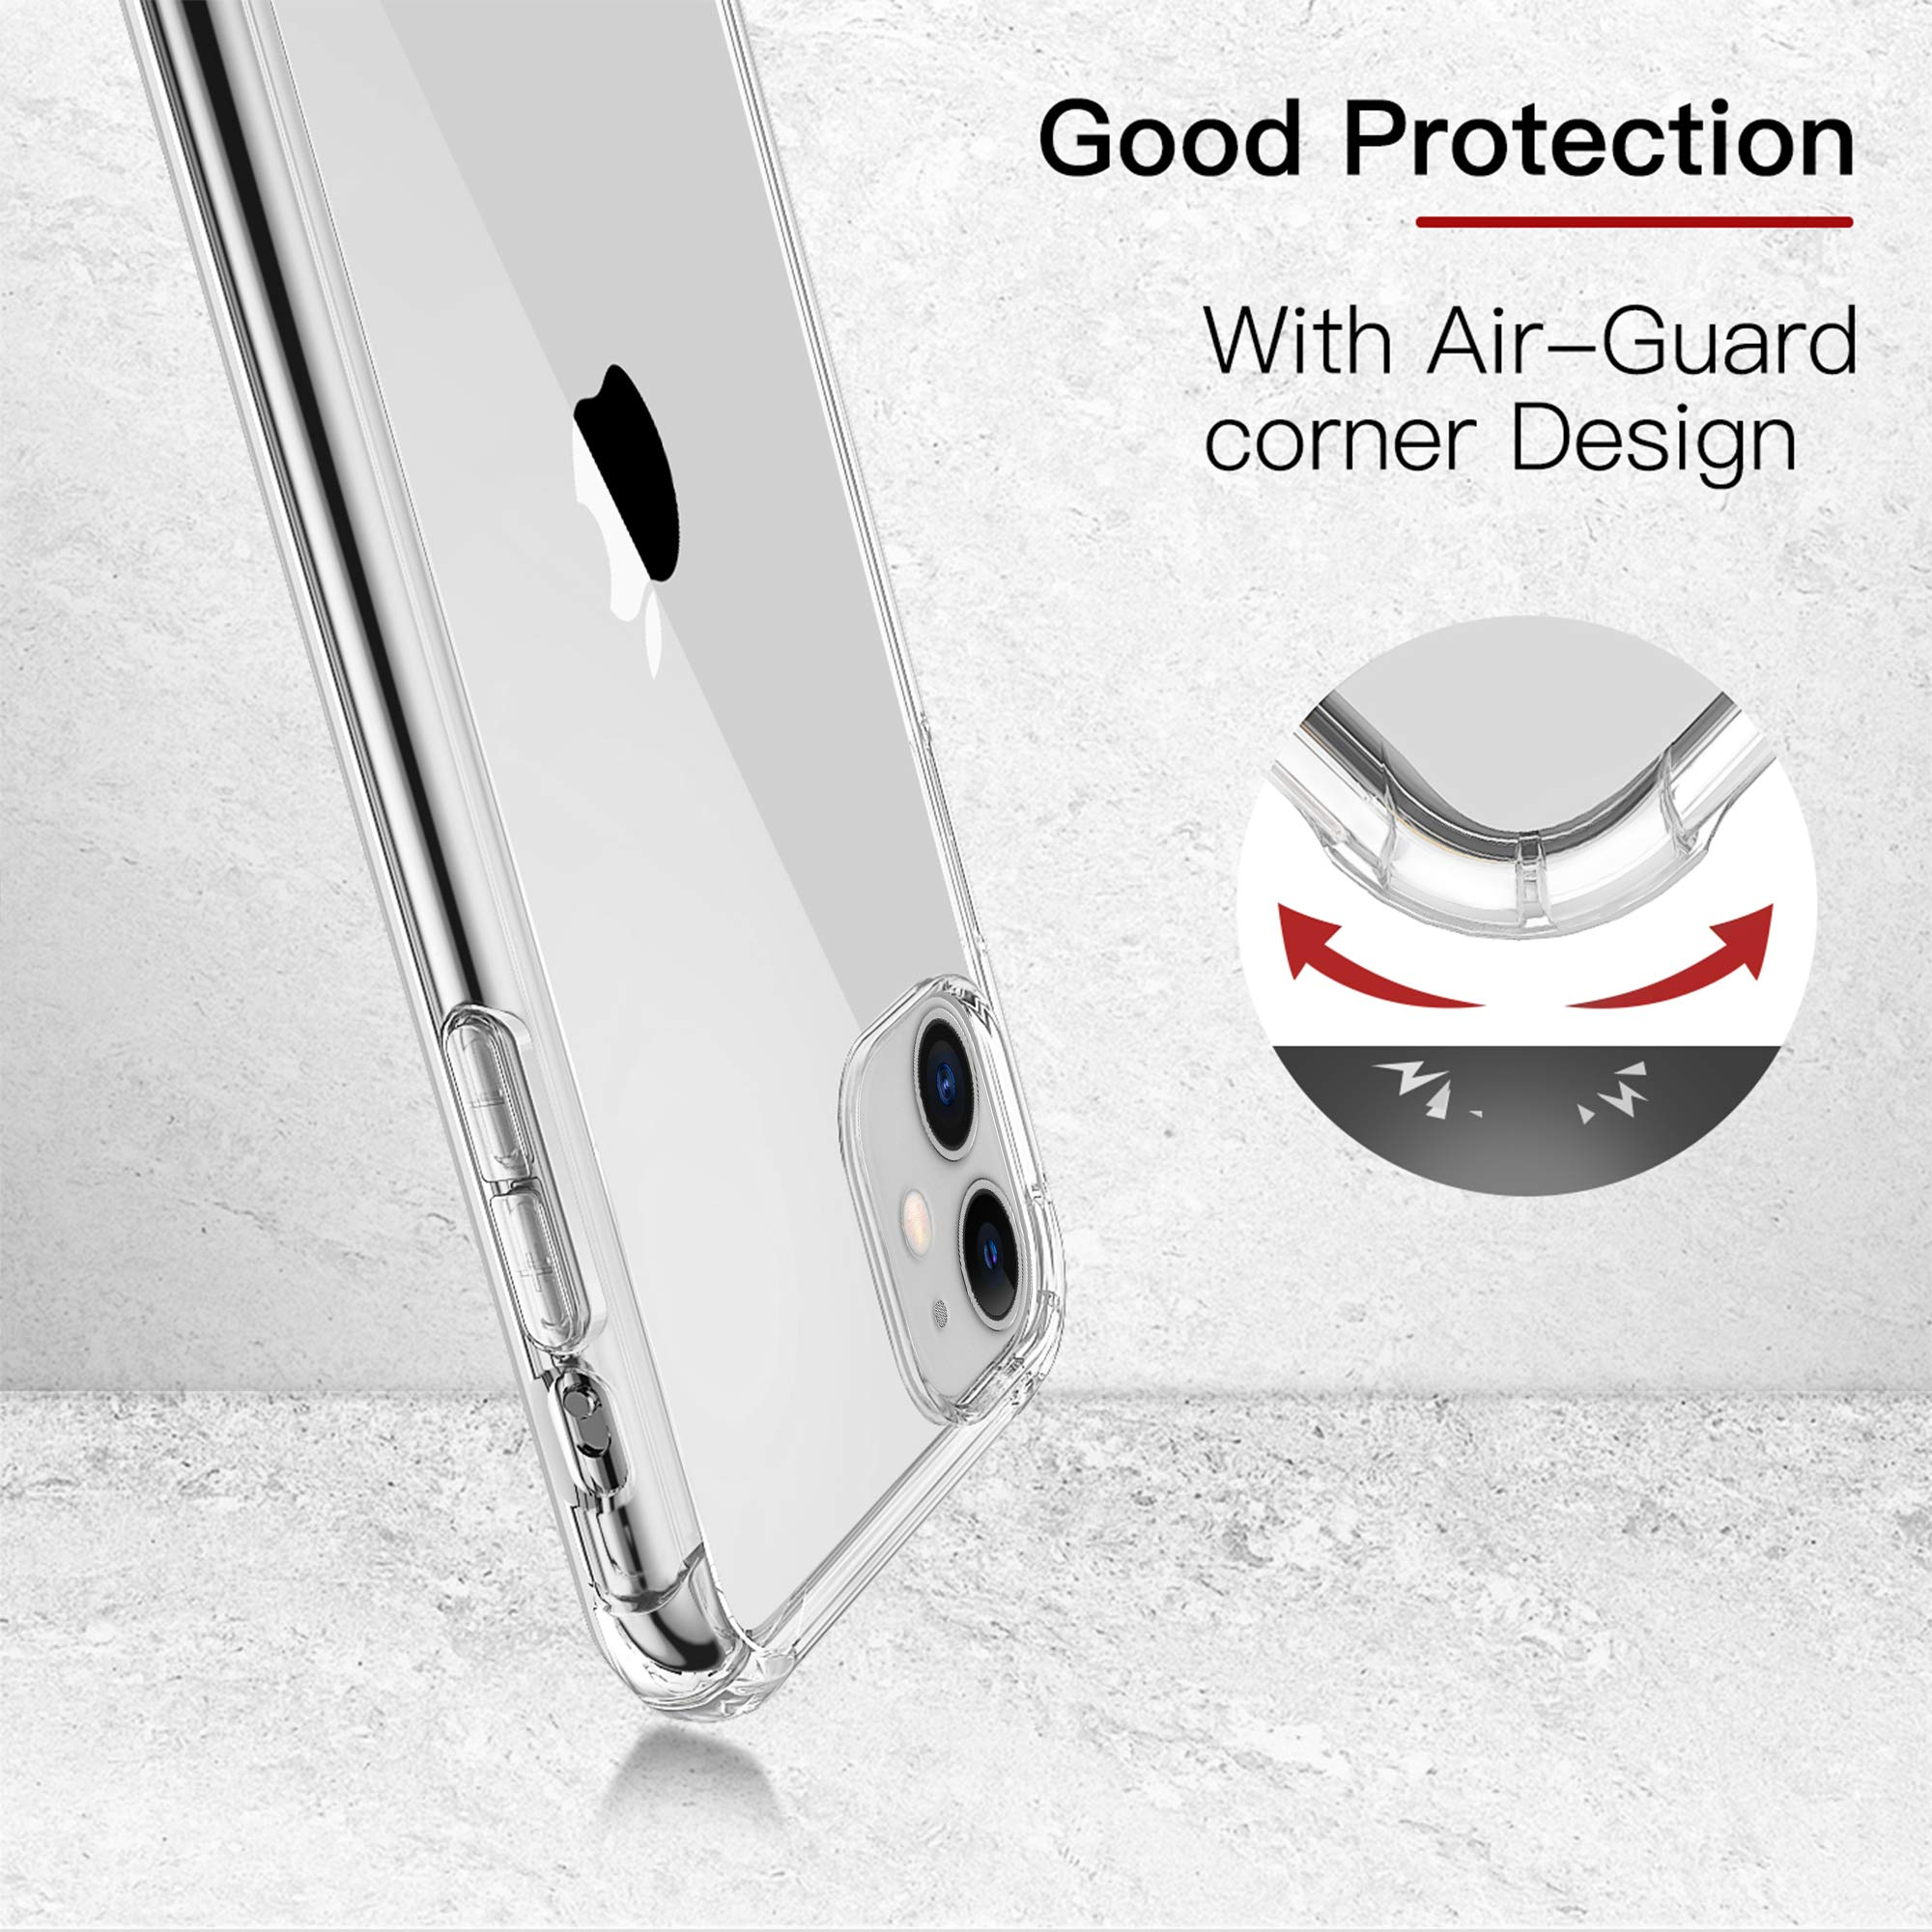 ULuck Case Compatible with Iphone 11, Crystal Clear Anti-Yellow Ultra Slim Soft TPU Silicone Shockproof, Anti-Scratch phone Case Cover - Pure Clear (6.1 inch)